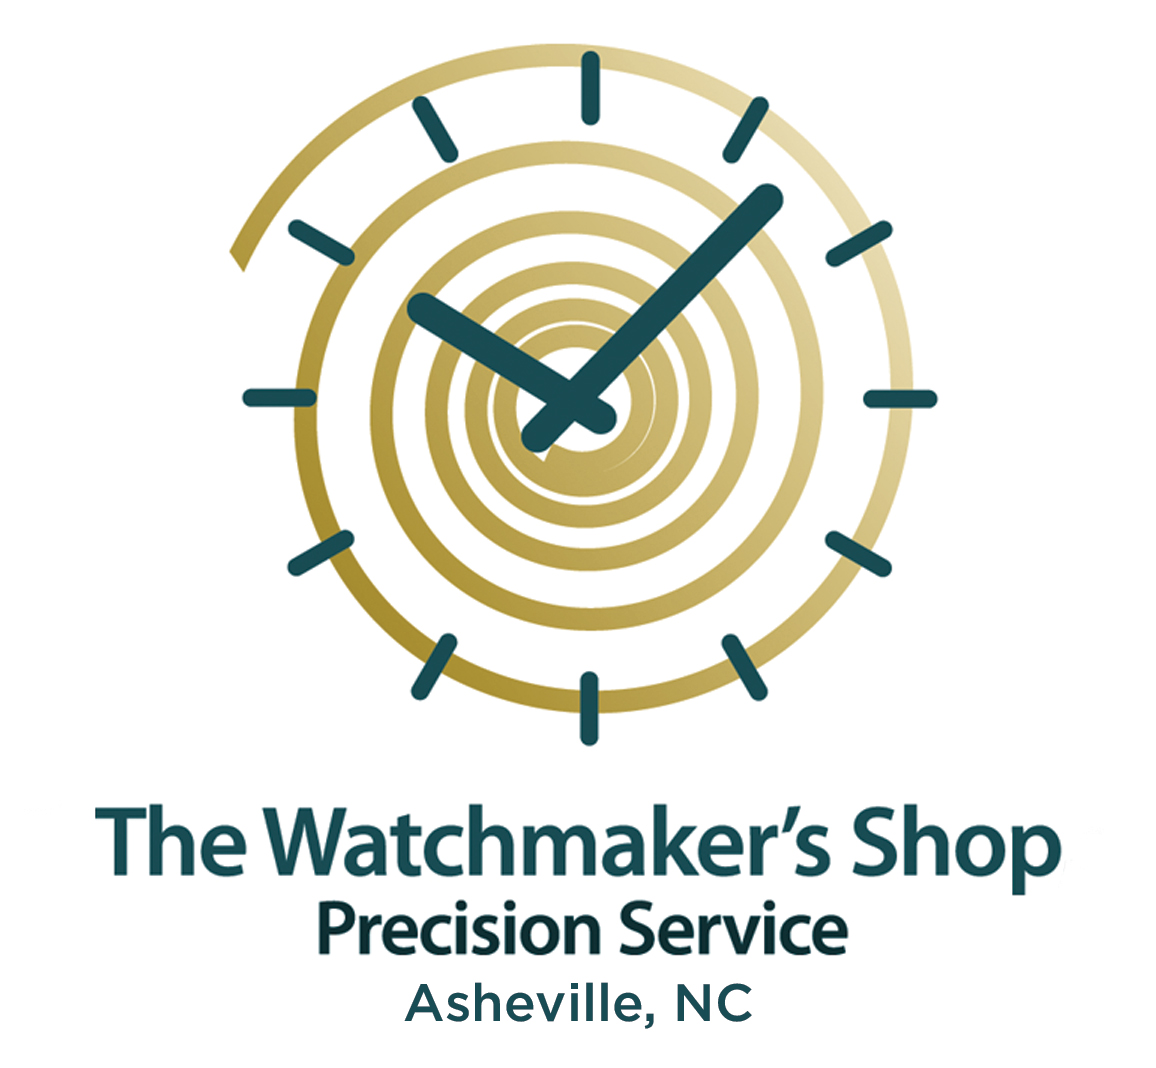 The Watchmaker's Shop